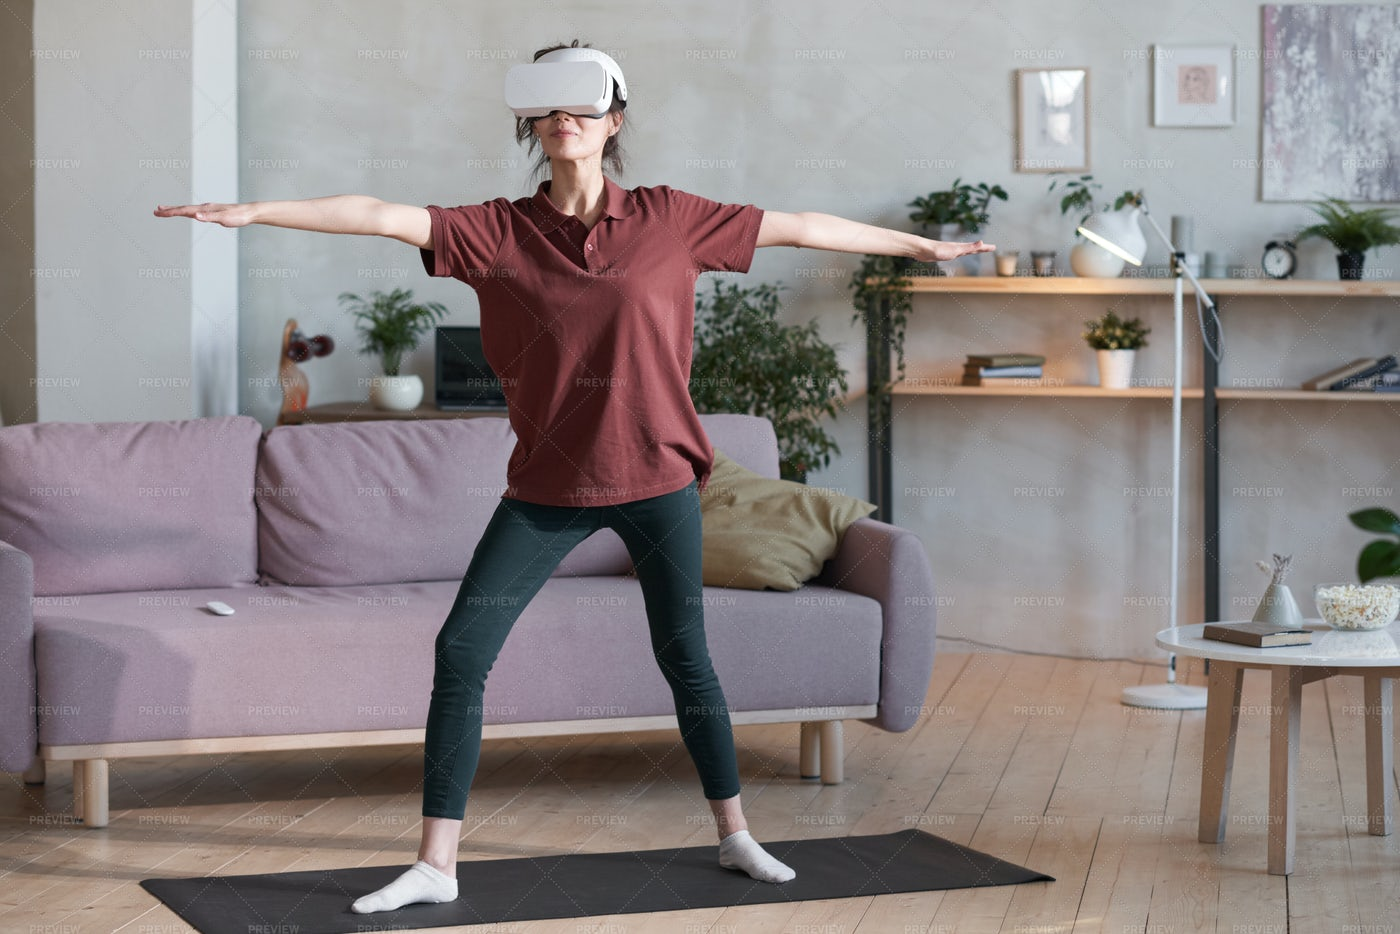 Woman Exercising In VR Headset: Stock Photos